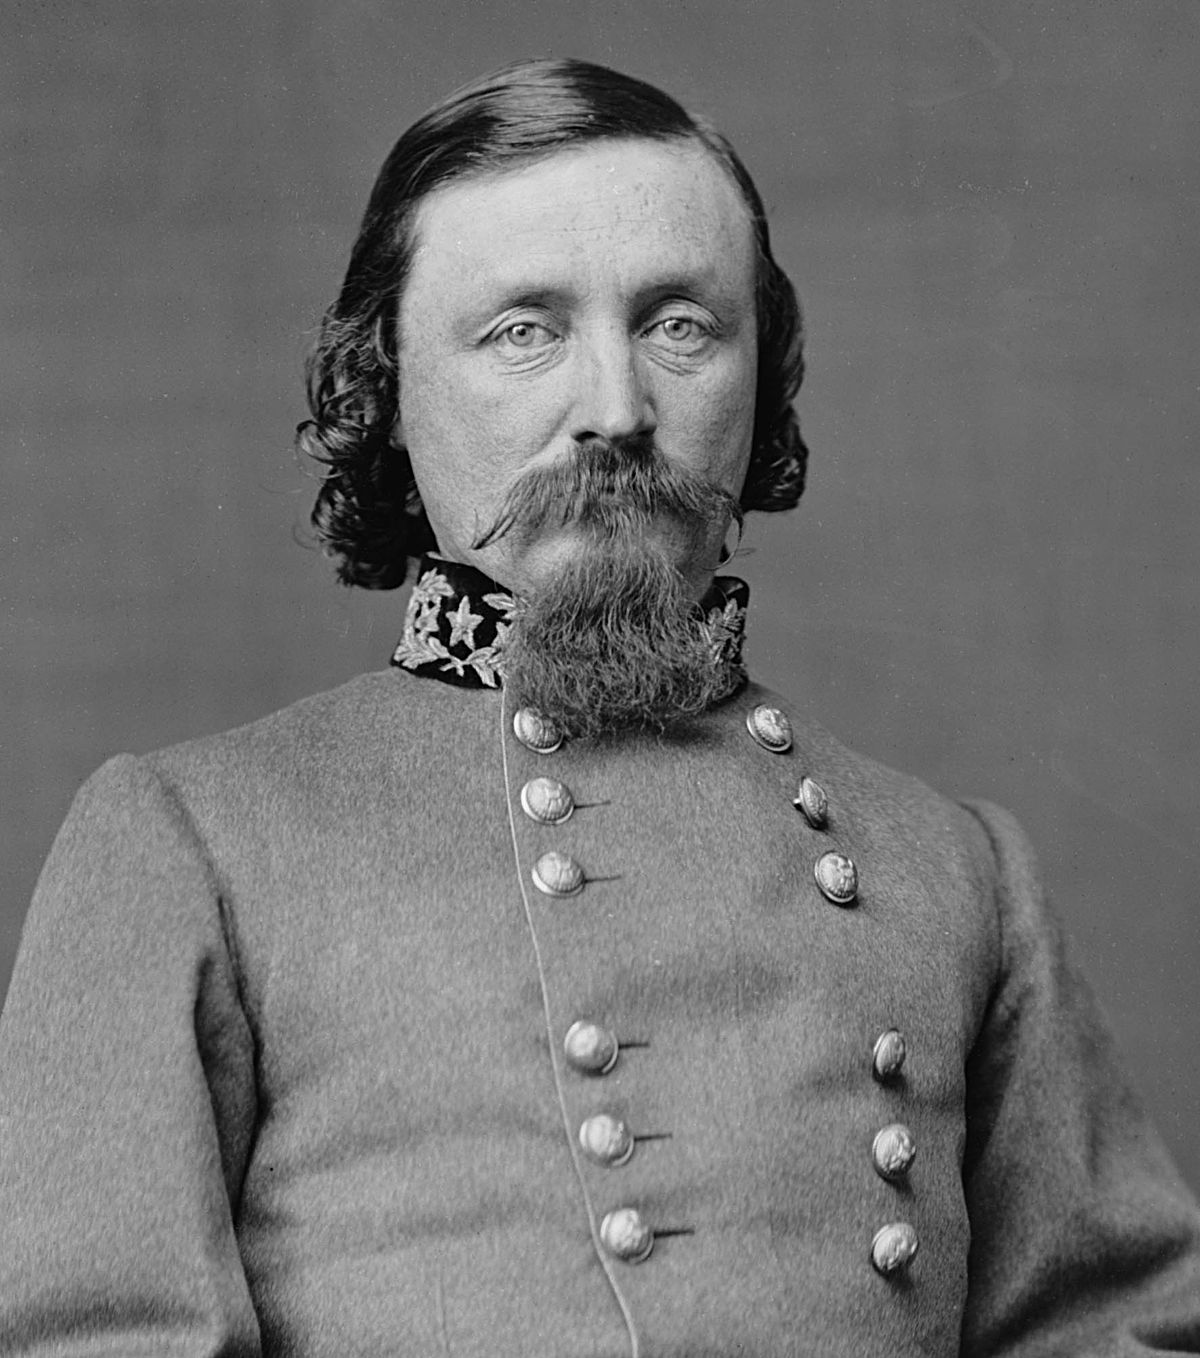 Read online or Download The Last Days of George Armstrong Custer  The True  Story of the Battle of the Little Bighorn  Full PDF ebook with essay      Thinking Again